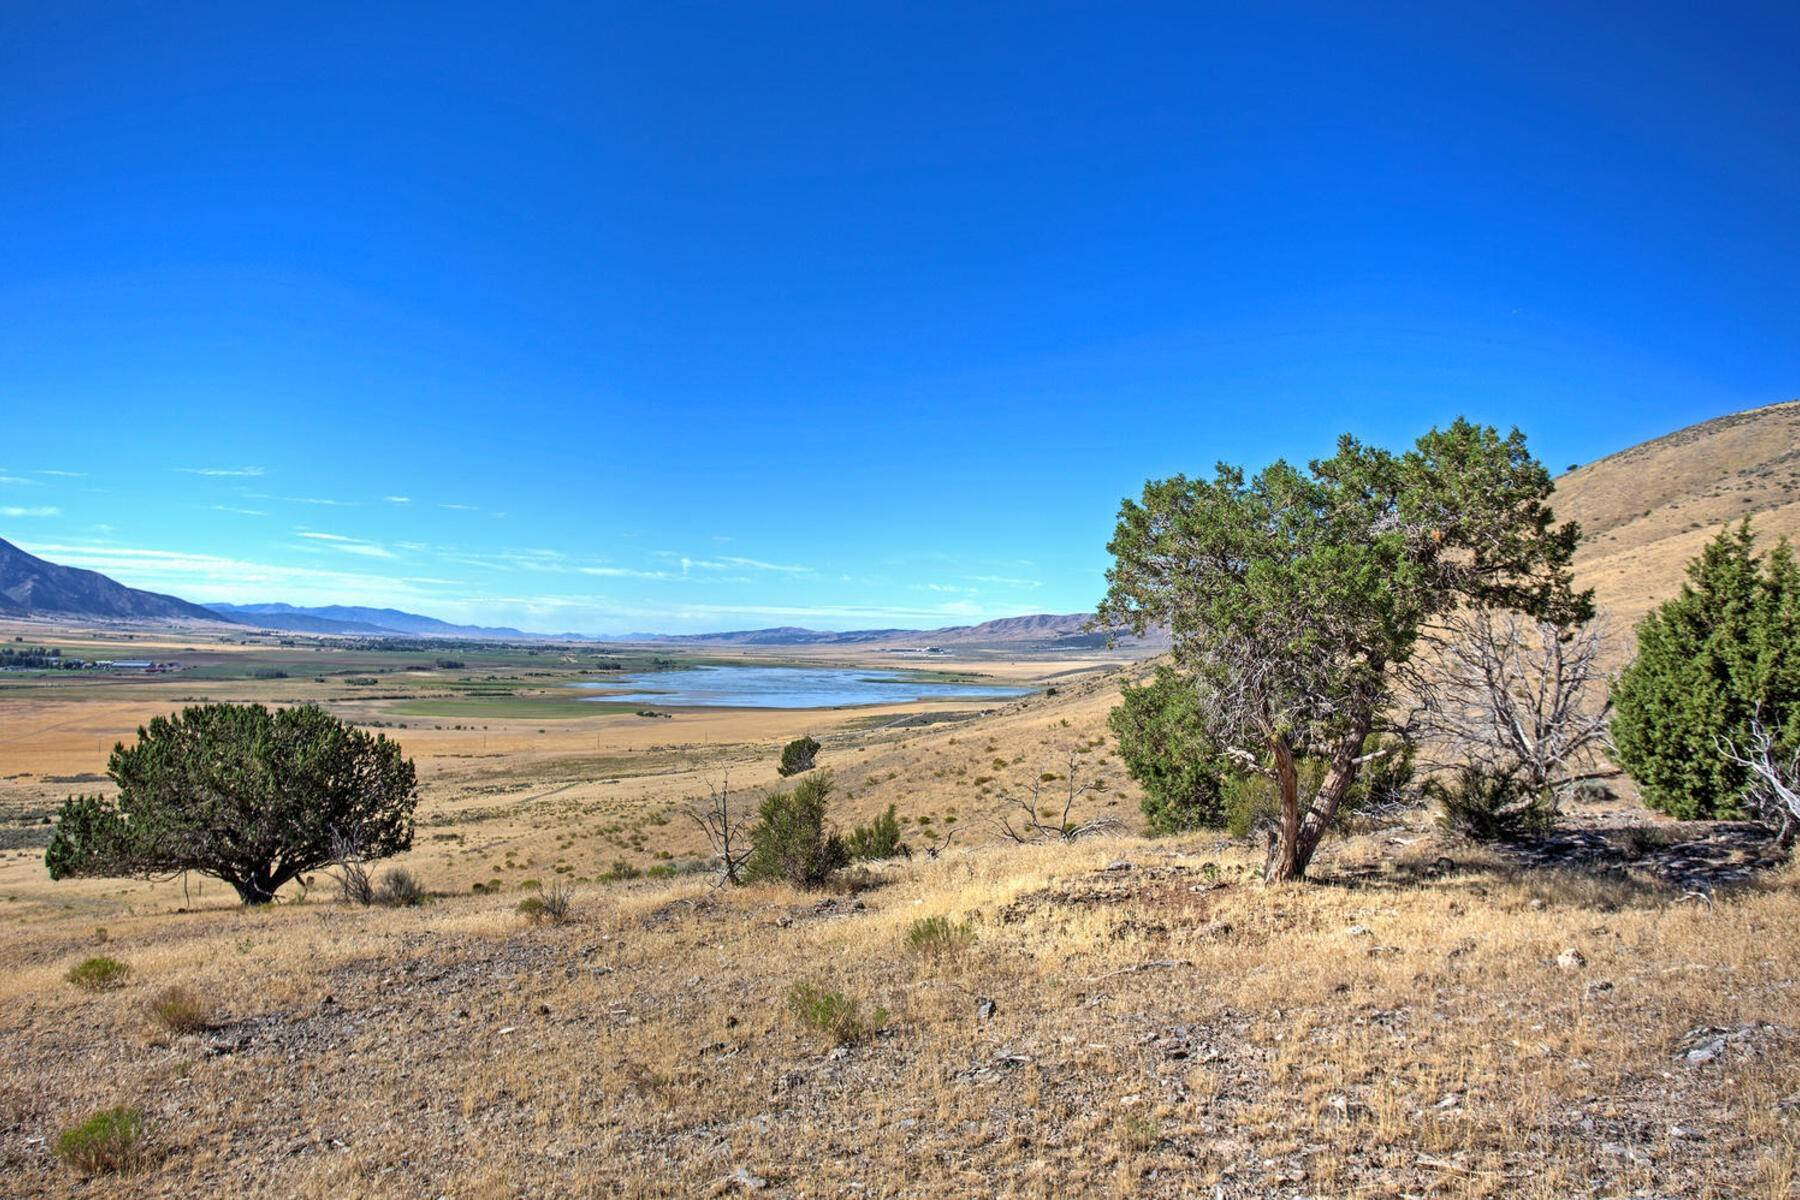 Land for Sale at 211 Acres in Mona 211.68 Acres No Situs Address Mona, Utah 84645 United States